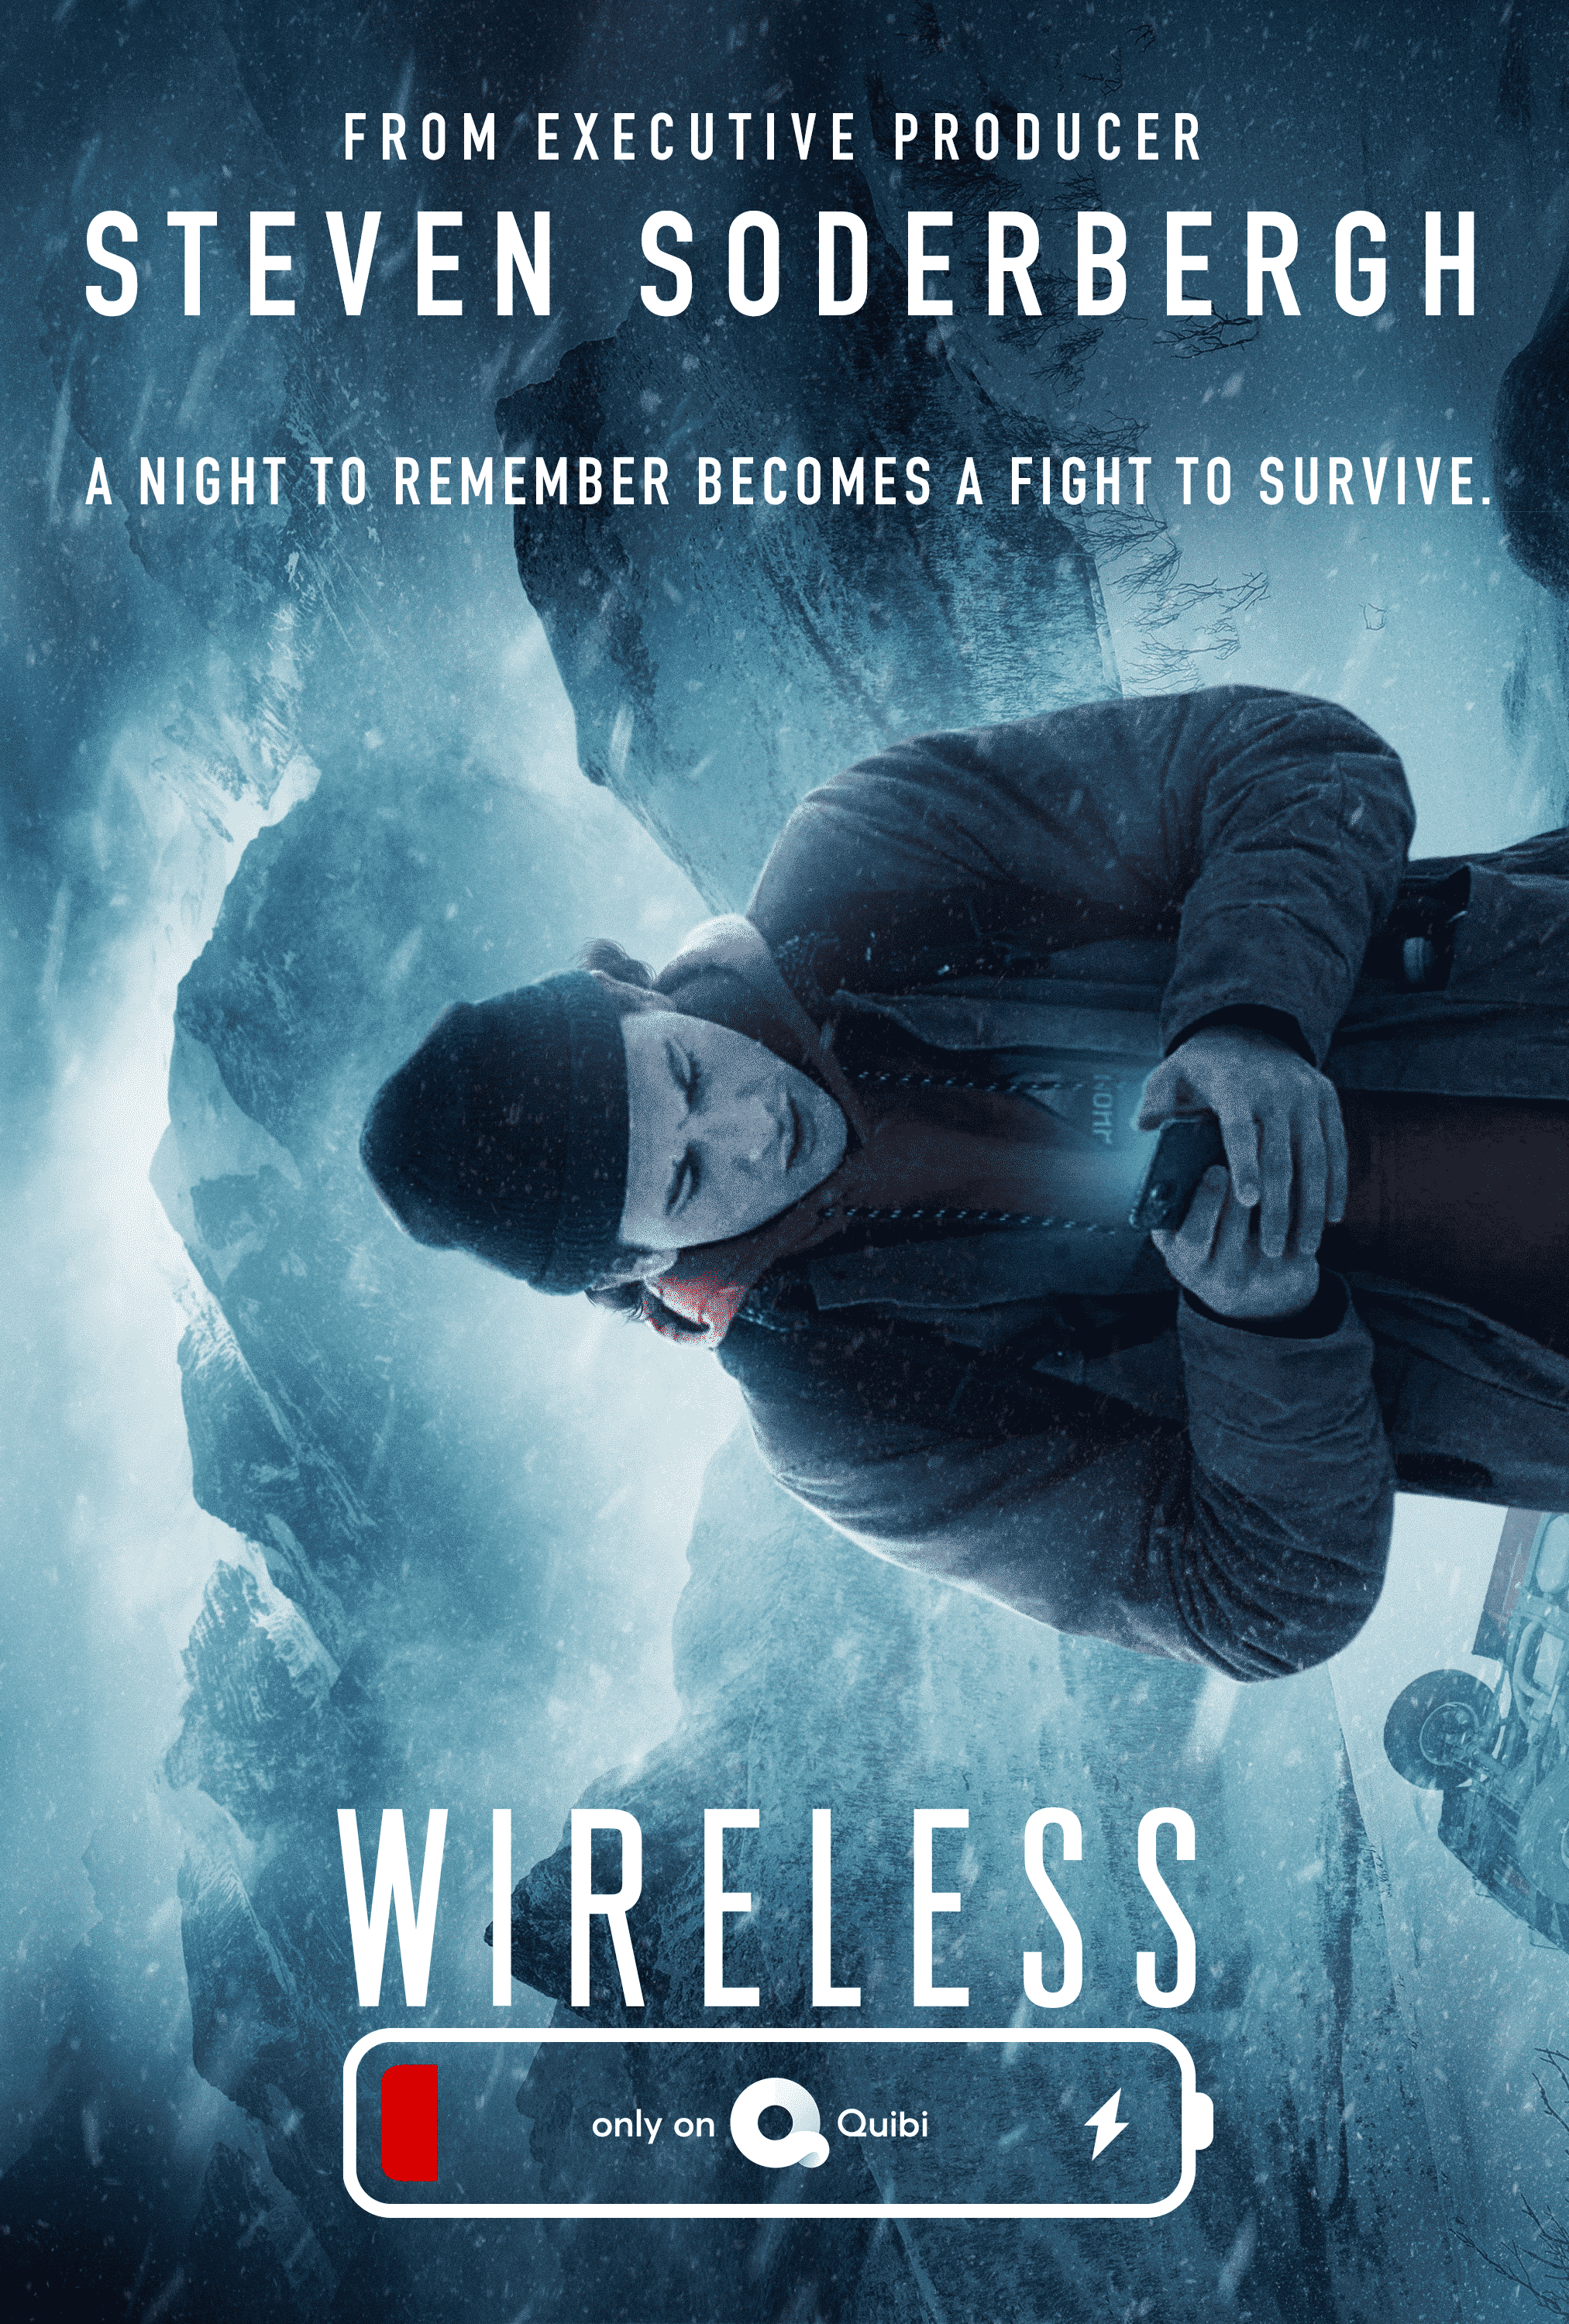 Poster - Wireless